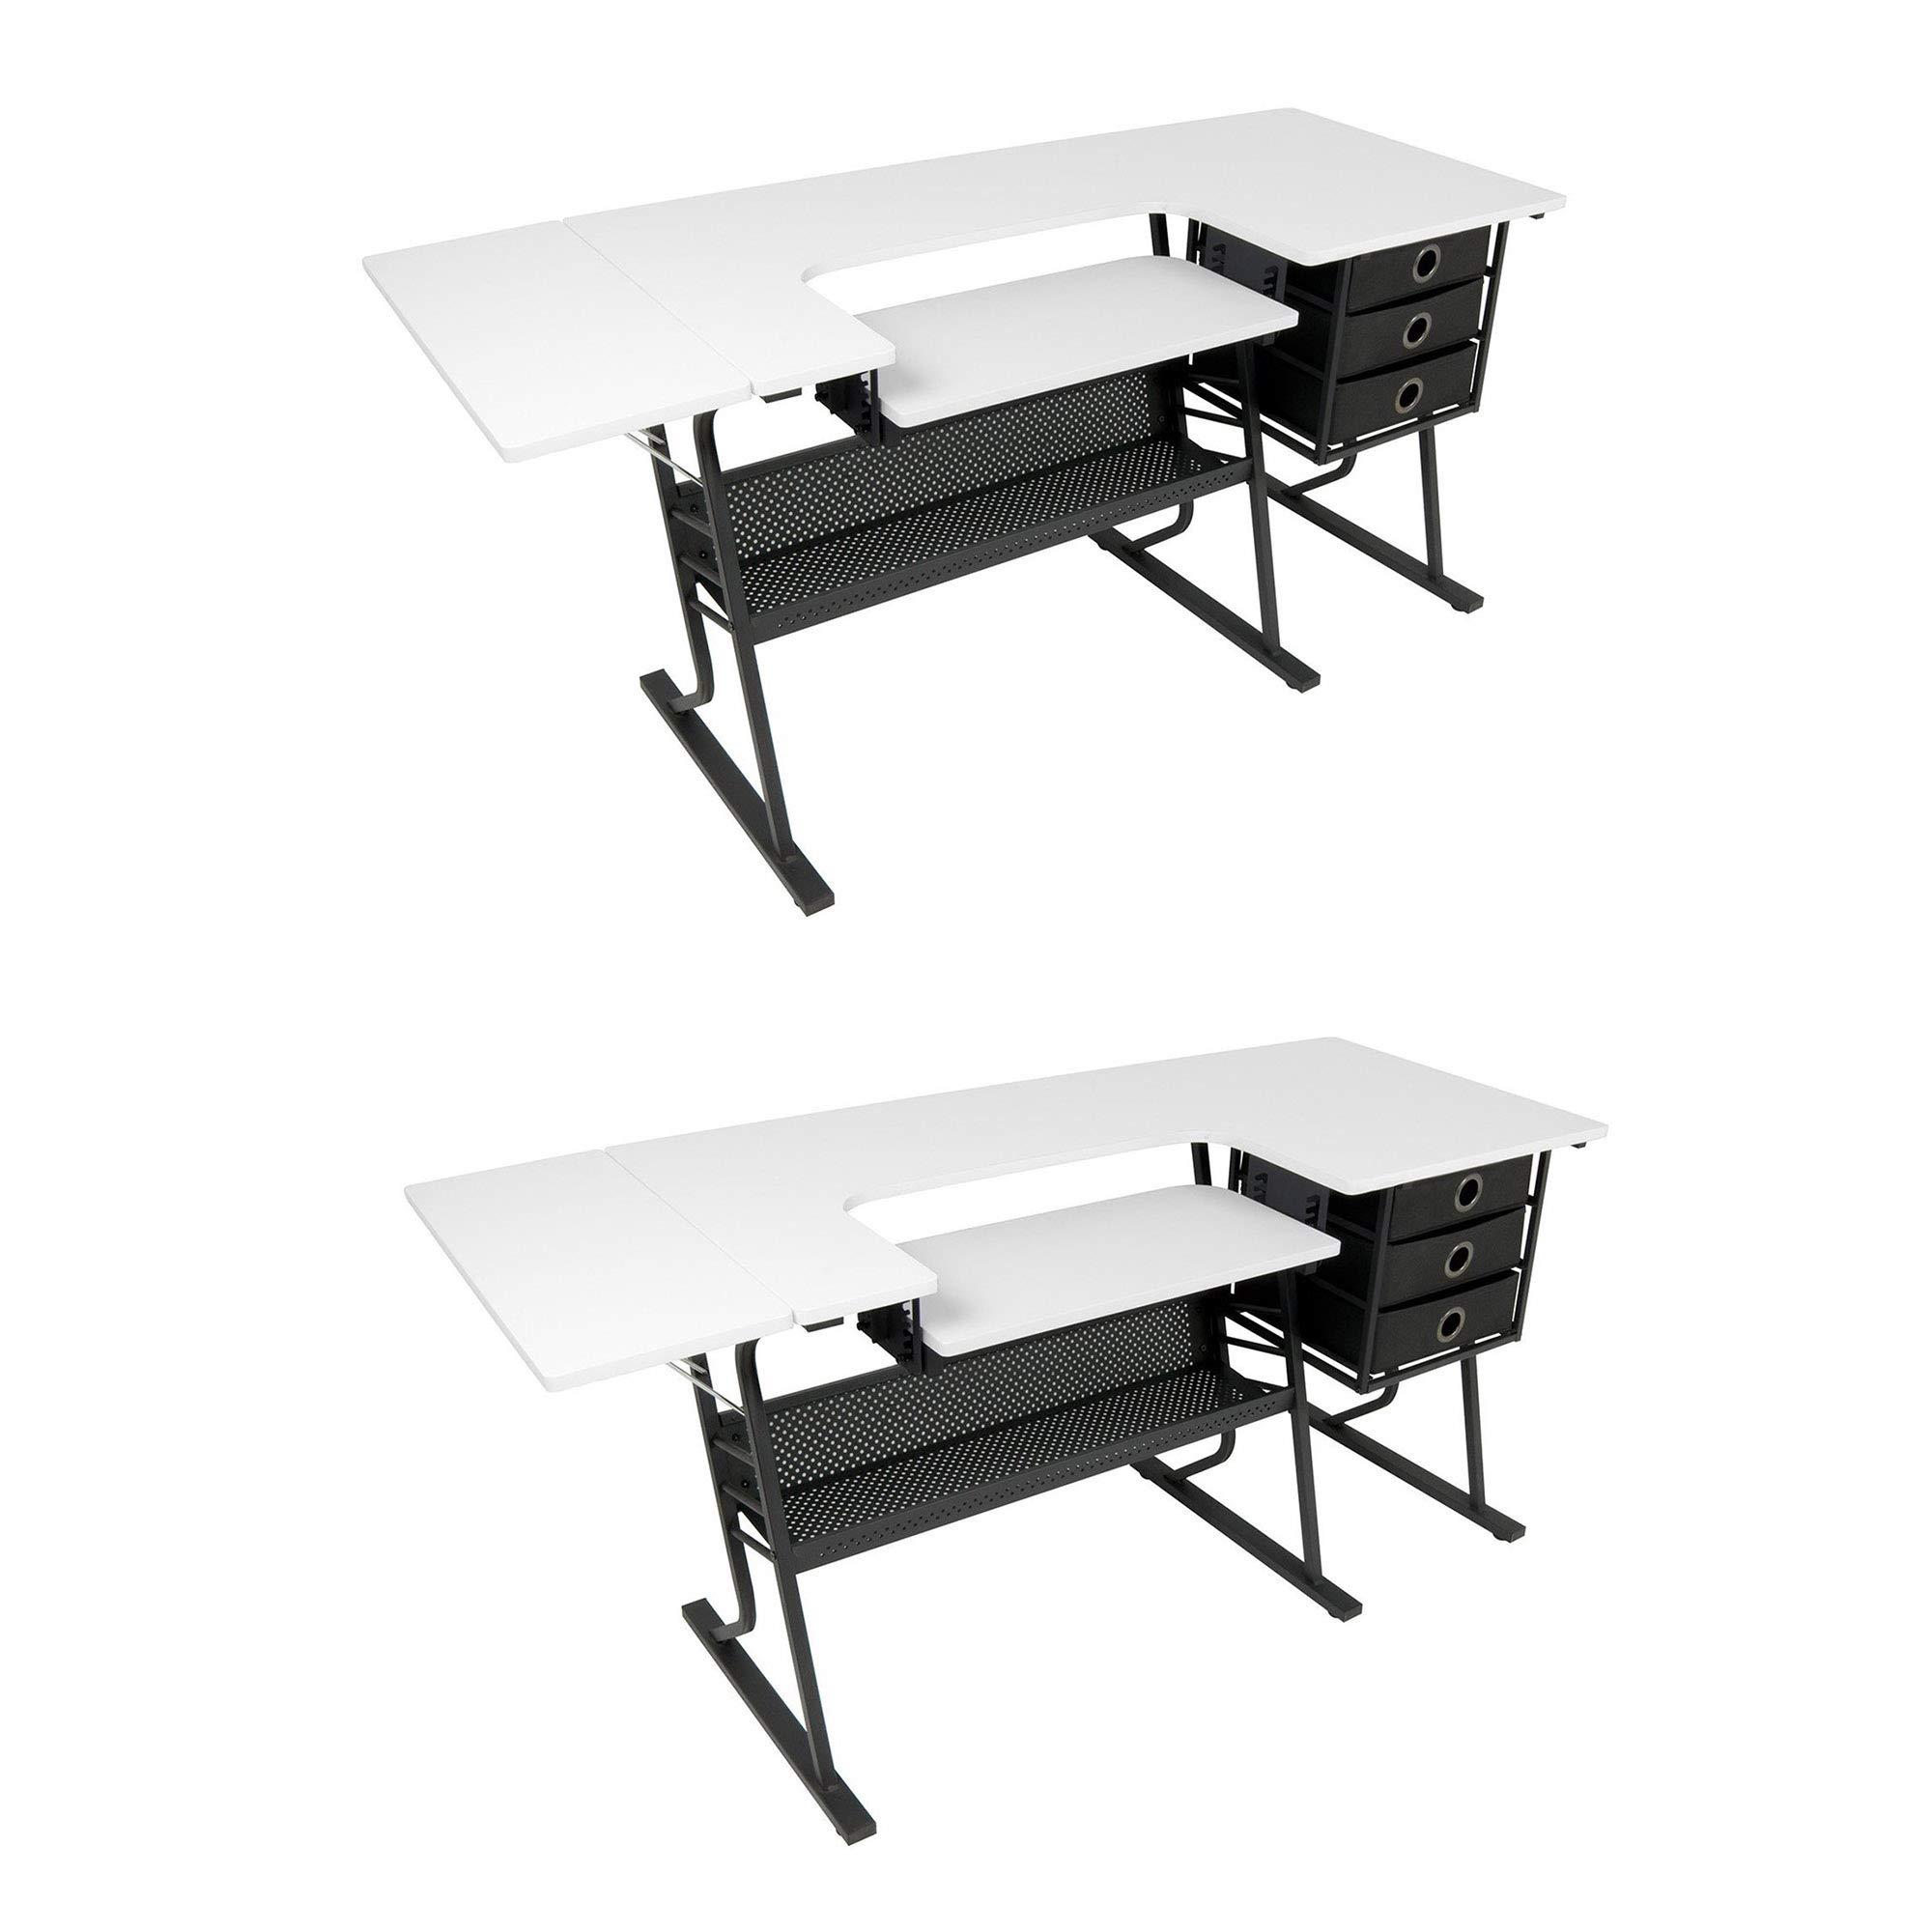 Studio Designs Eclipse Hobby Sewing Arts & Crafts Center Table, Black & White (2 Pack)